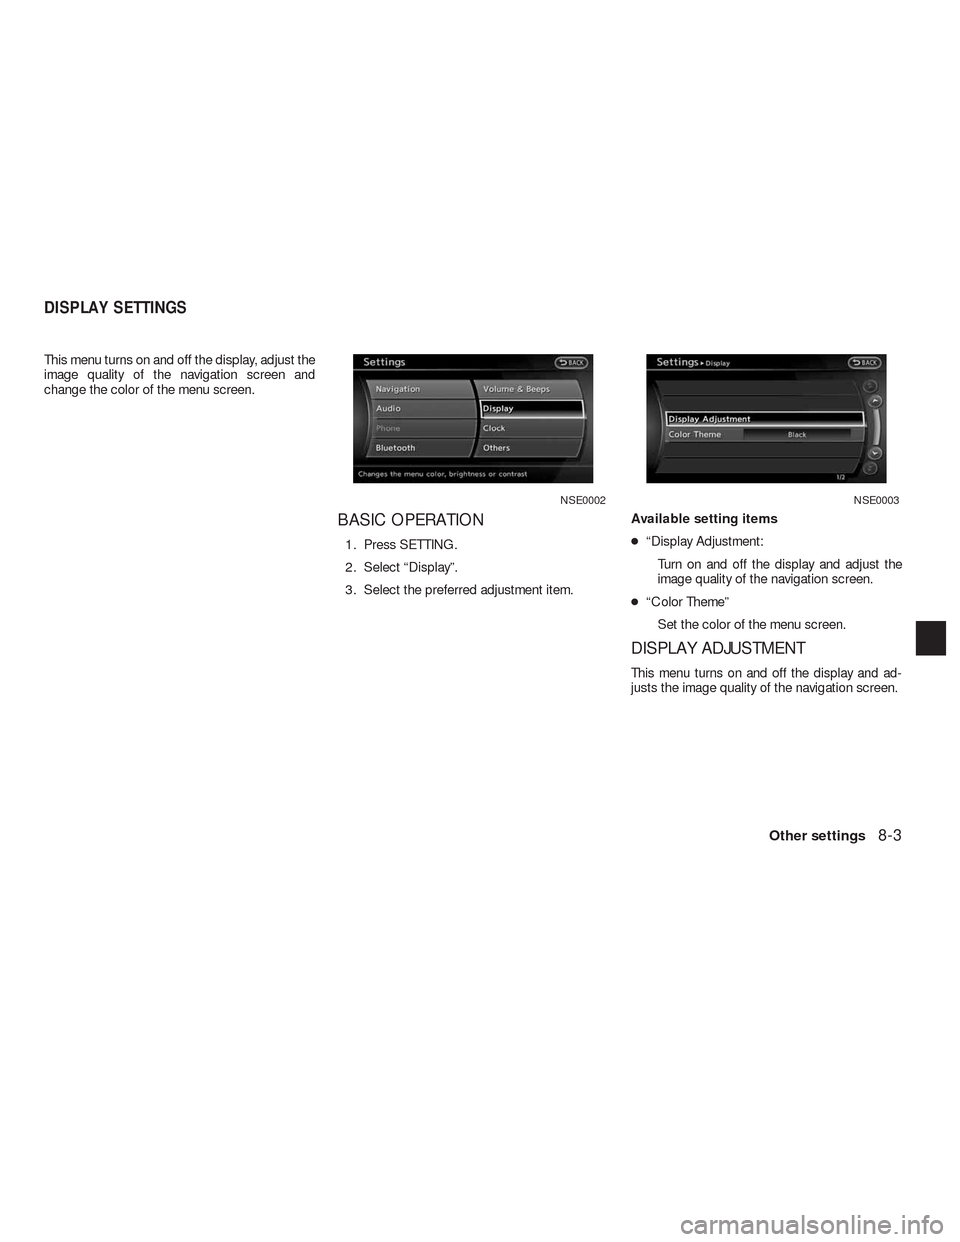 NISSAN ALTIMA HYBRID 2010 L32A / 4.G Navigation Manual, Page 214